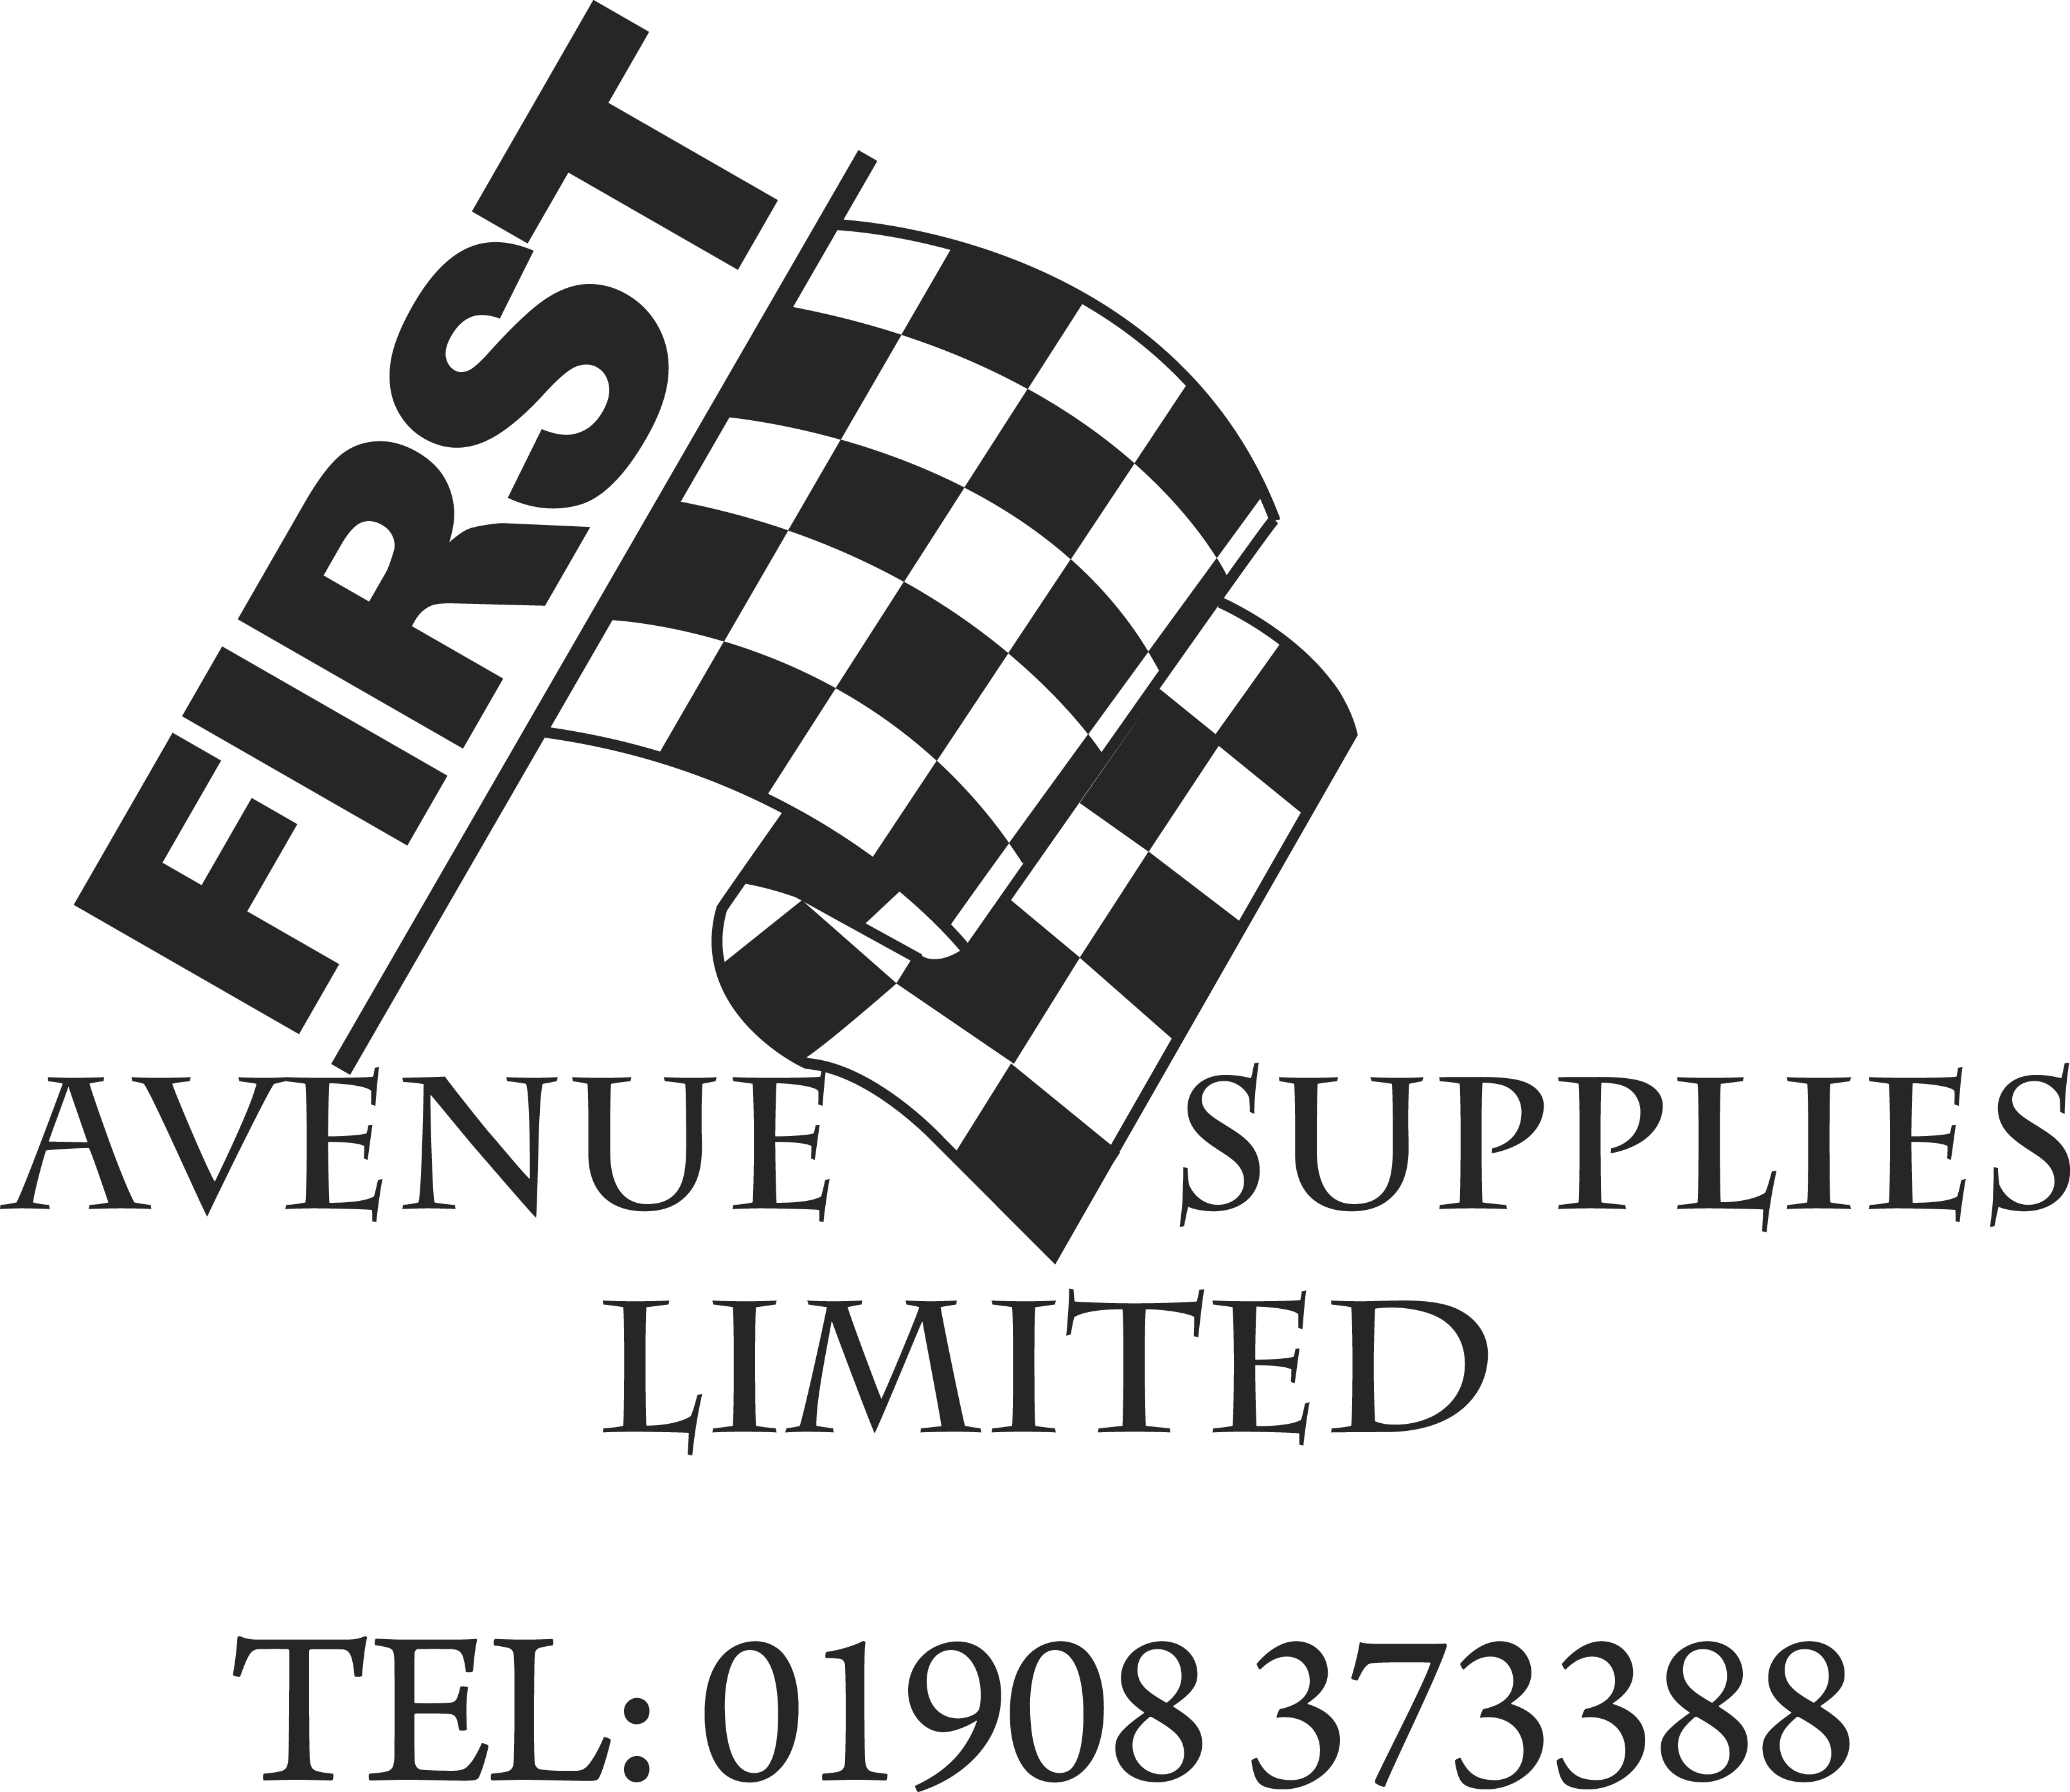 FIRST AVENUE SUPPLIES LTD